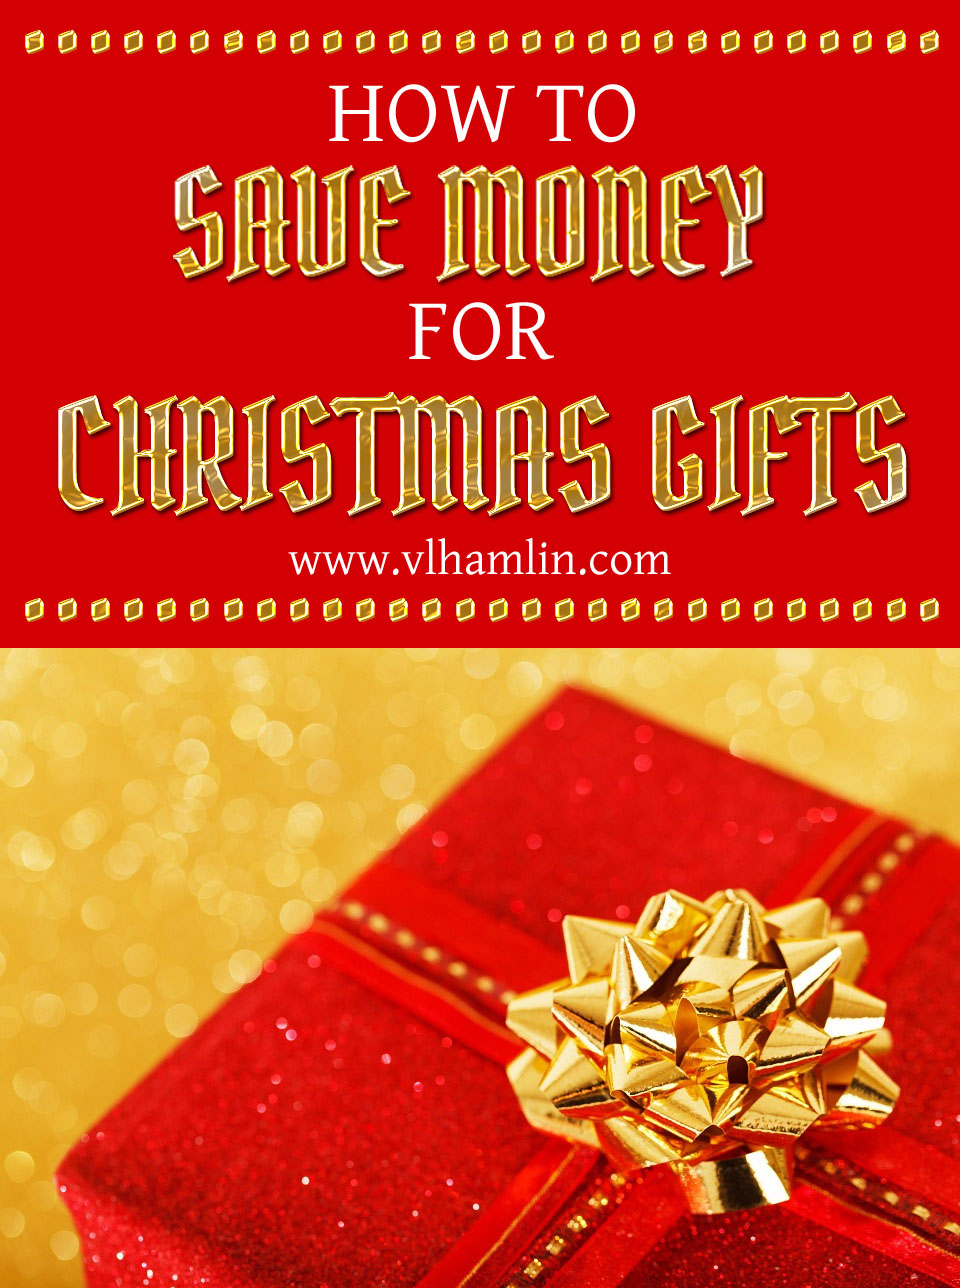 How to Save Money for Christmas Gifts